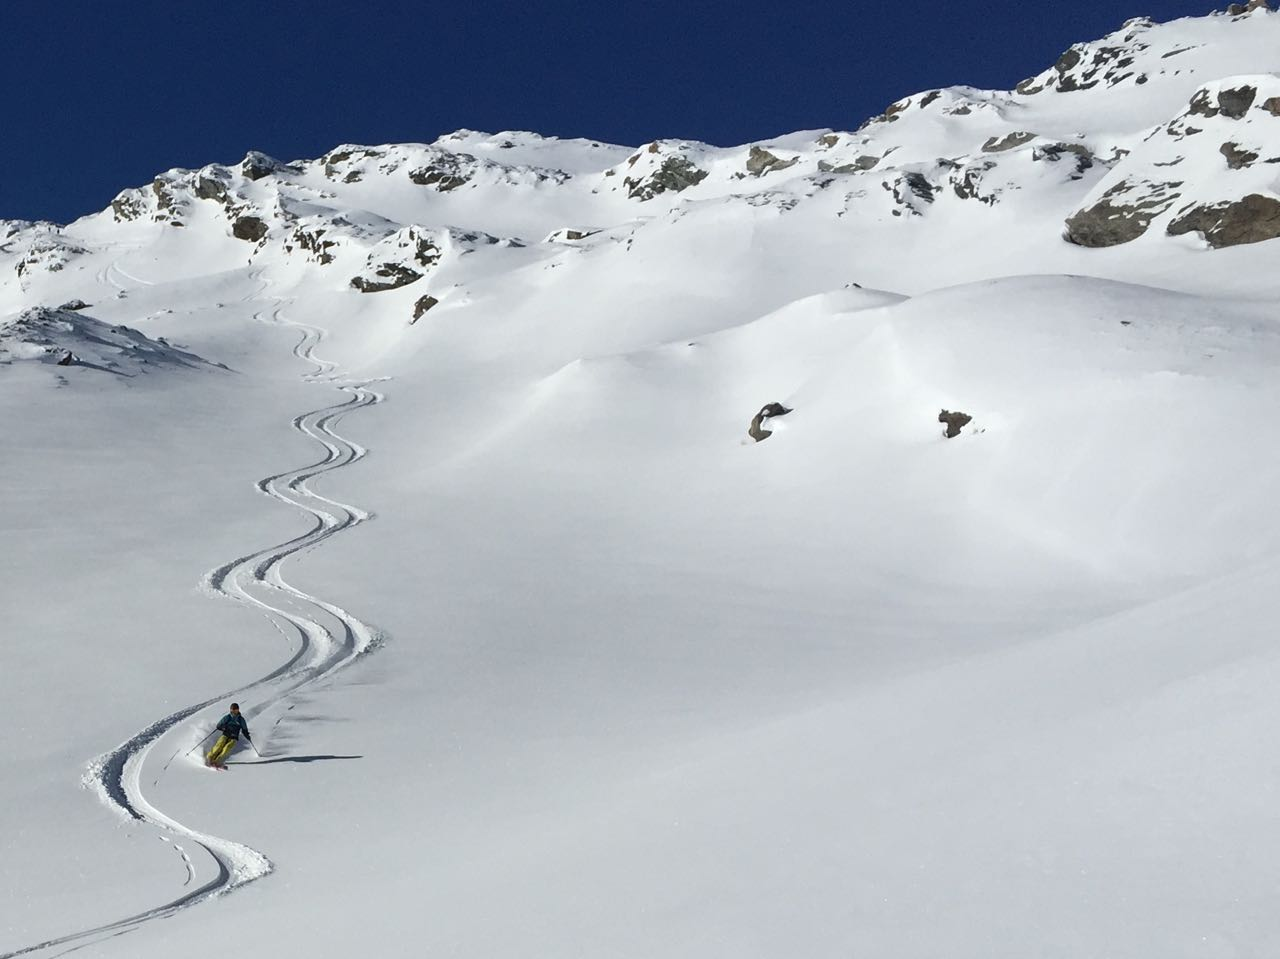 Riding powder in South America